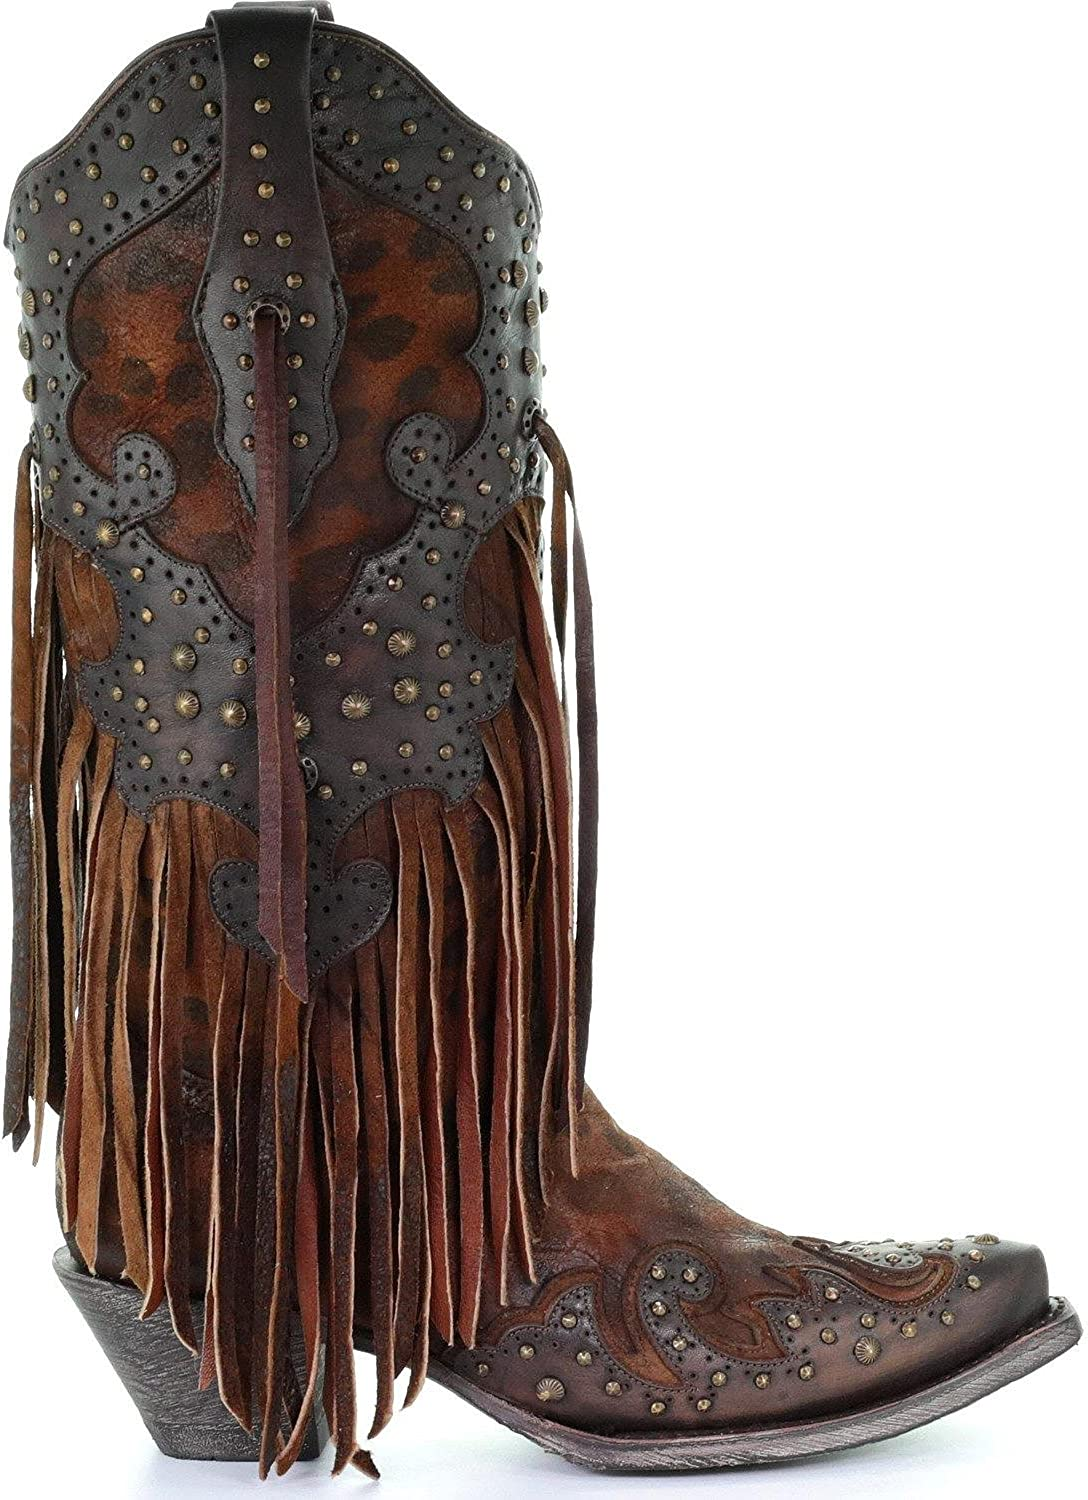 Fringe Cowgirl Boot Snip Toe | Boots